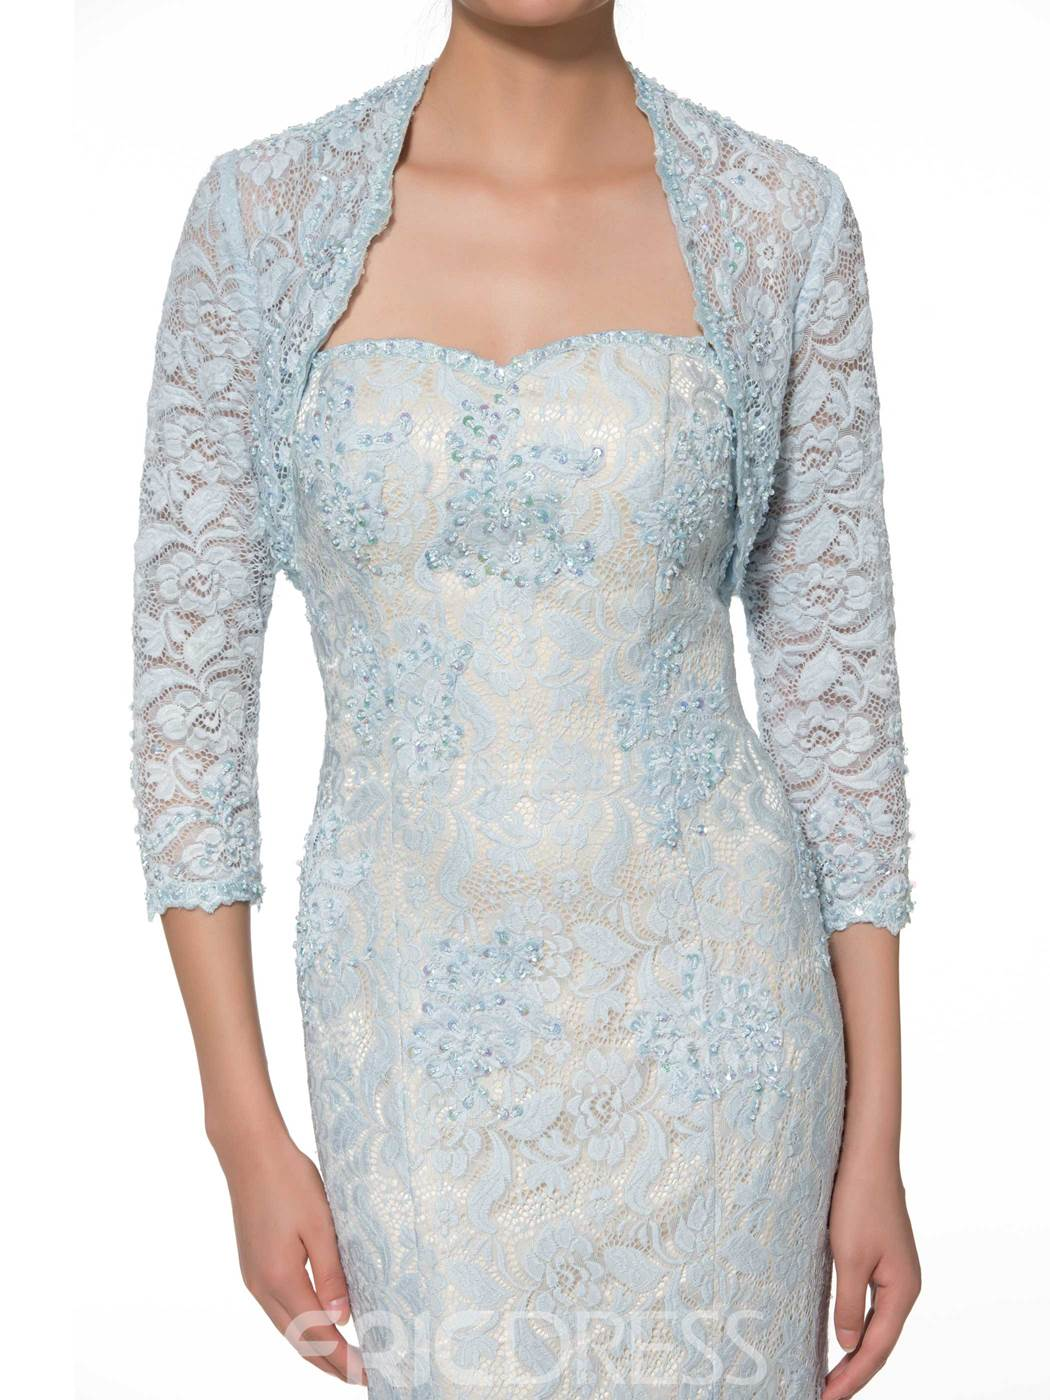 Ericdress Fancy Sweetheart Mermaid Lace Mother of the Bride Dress with Jacket